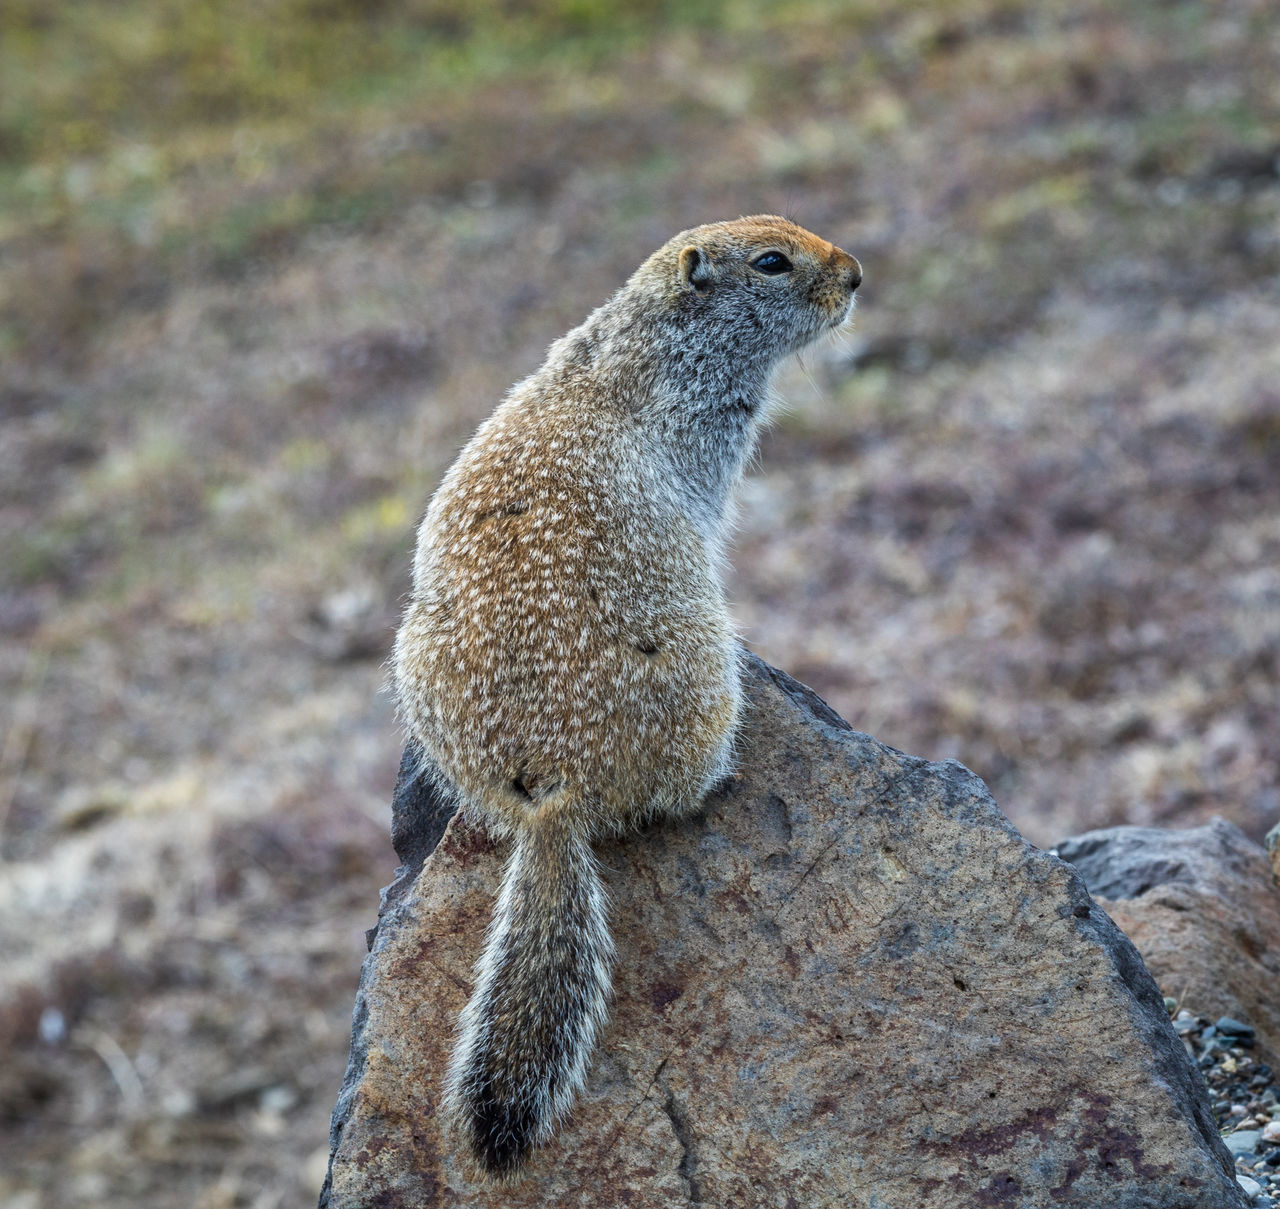 animal themes, animal, animal wildlife, one animal, animals in the wild, mammal, rock, rock - object, solid, no people, meerkat, nature, focus on foreground, vertebrate, day, rodent, close-up, land, looking, looking away